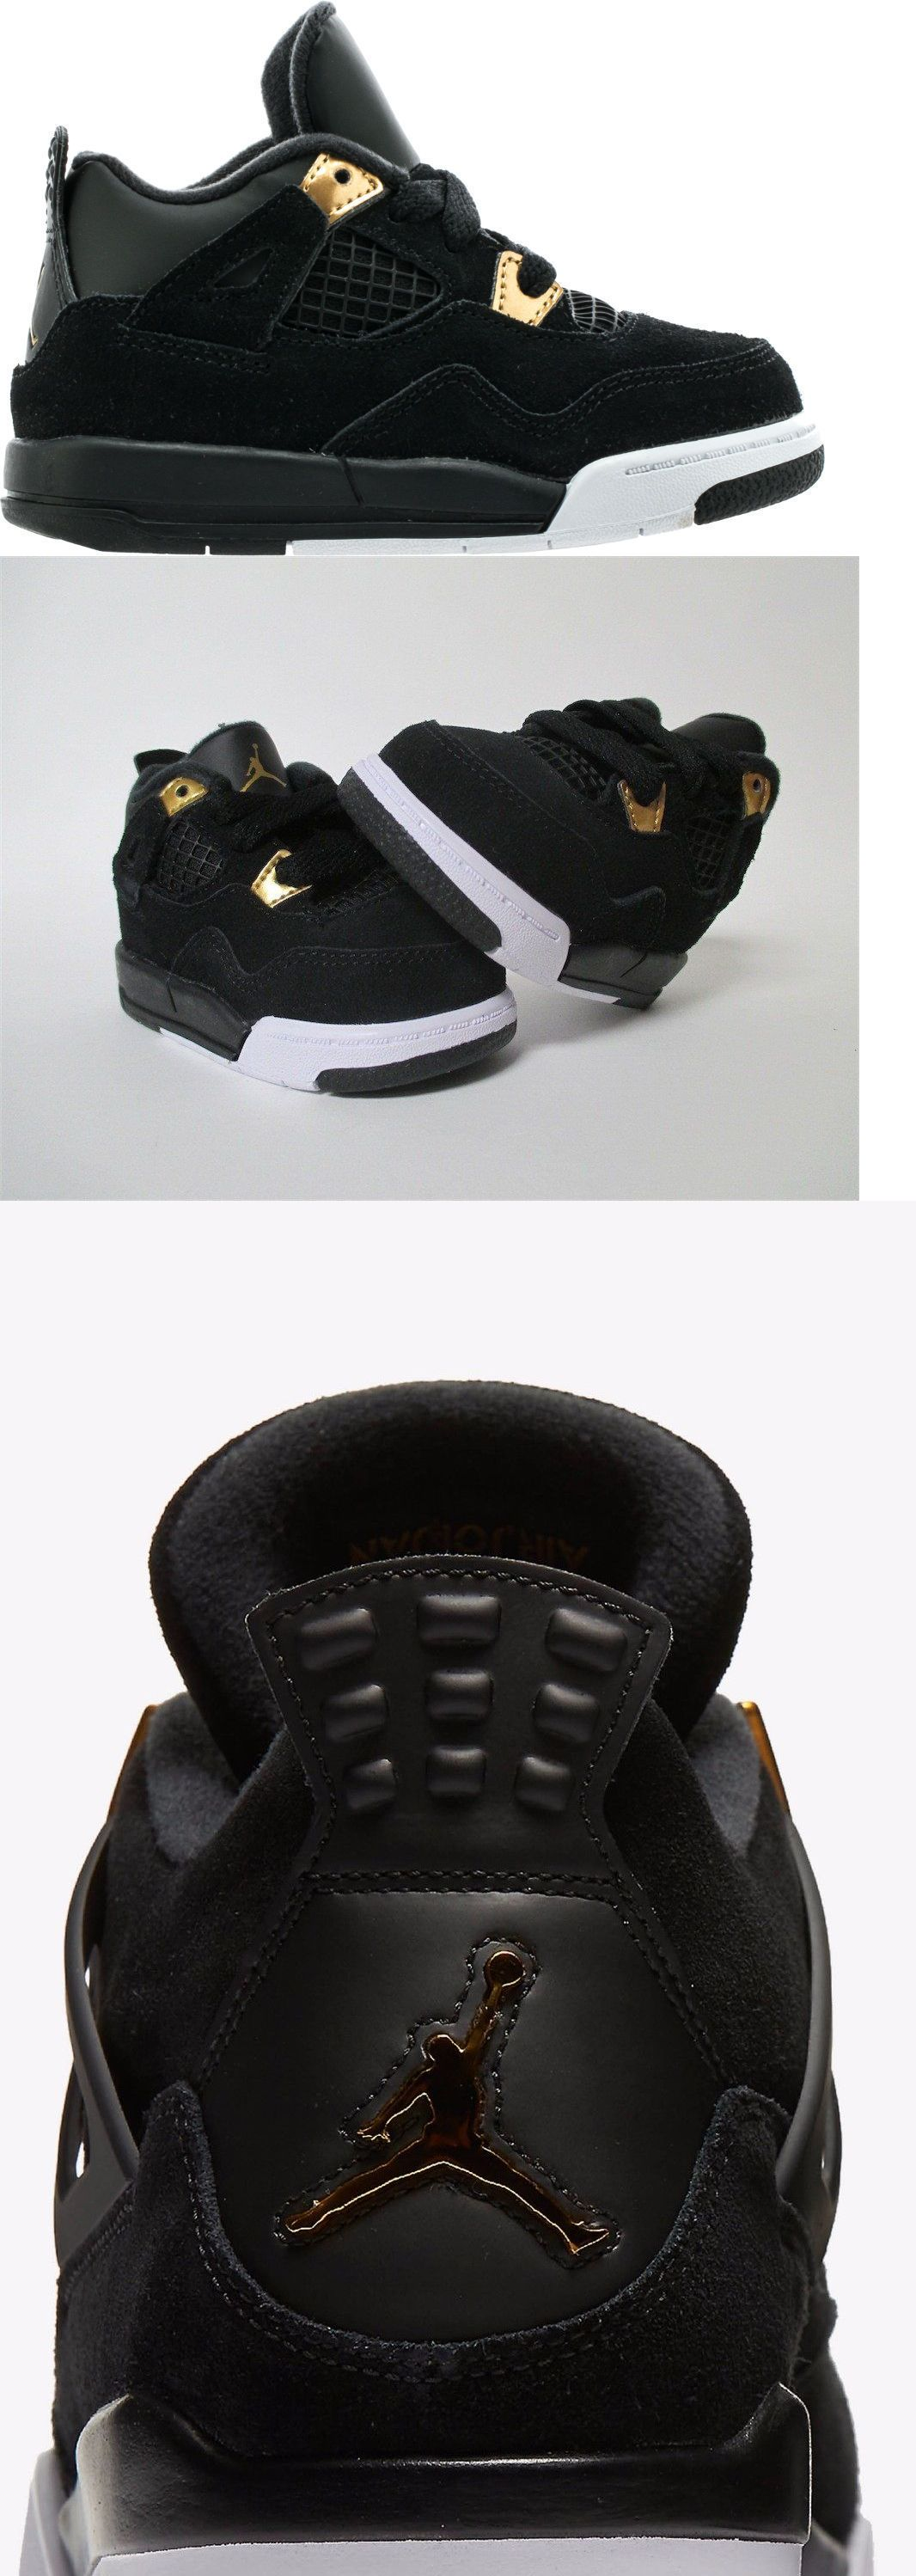 Baby Shoes 147285: Nike Air Jordan Retro 4 Bt 368500-032 Leather Toddler  Shoes